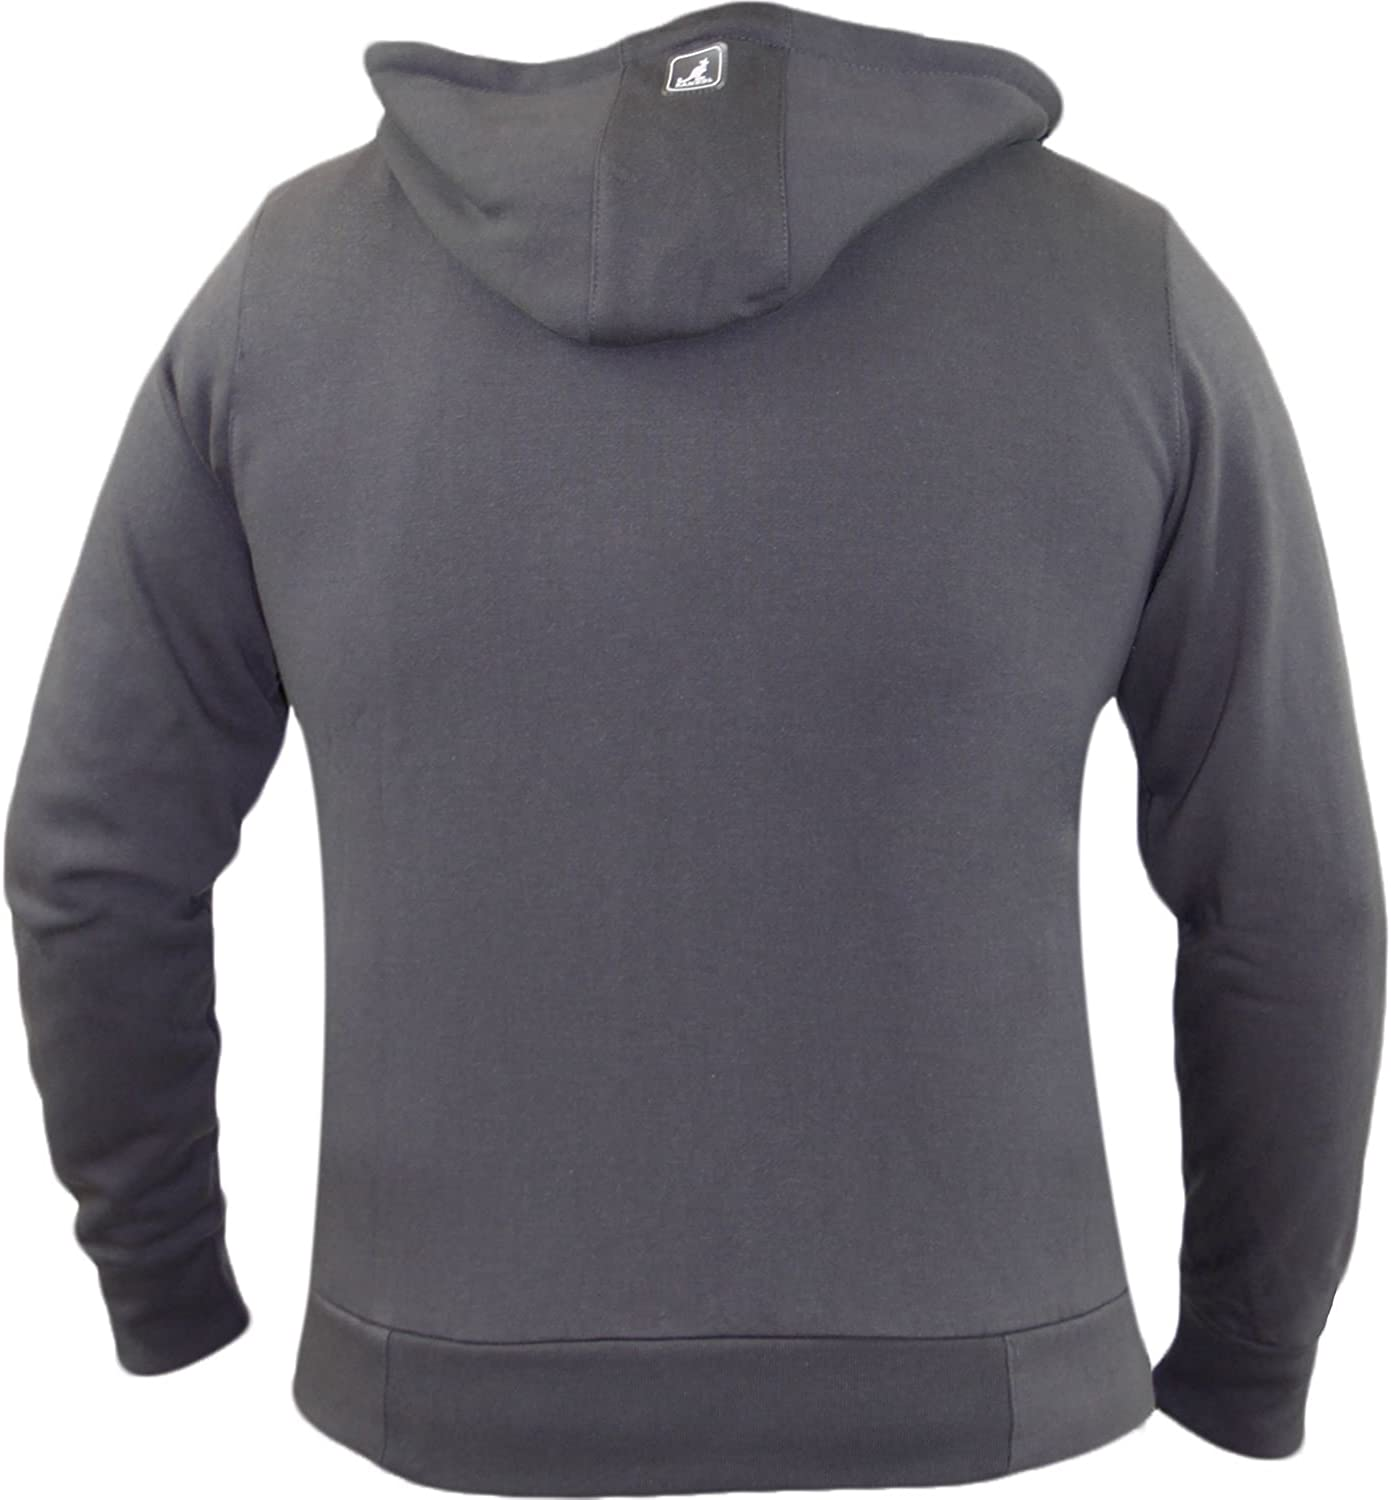 S Mens Boys Kangol Designer Fleece Sweatshirt Zipper Top Size XL